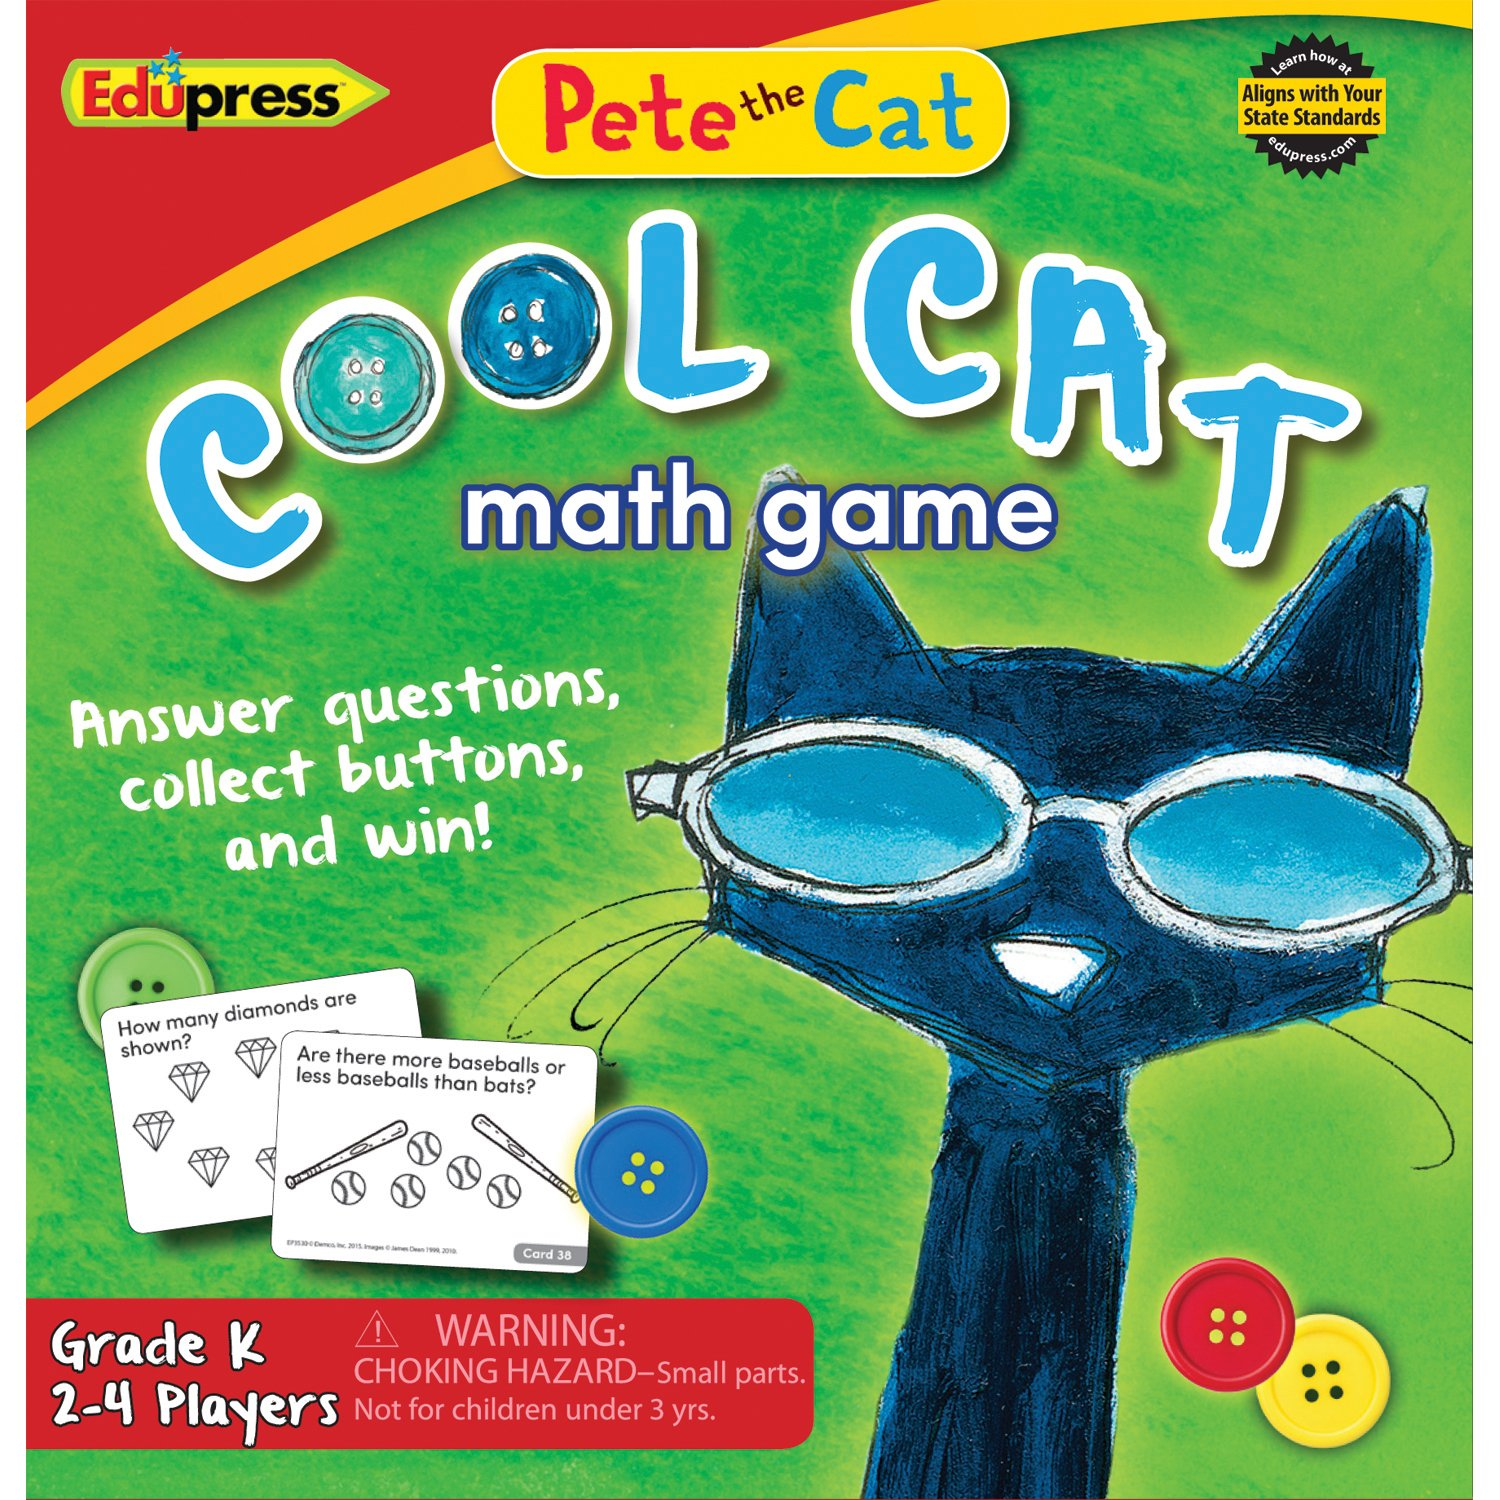 Edupress Pete the Cat Cool Cat Math Game Grade K - EP63530